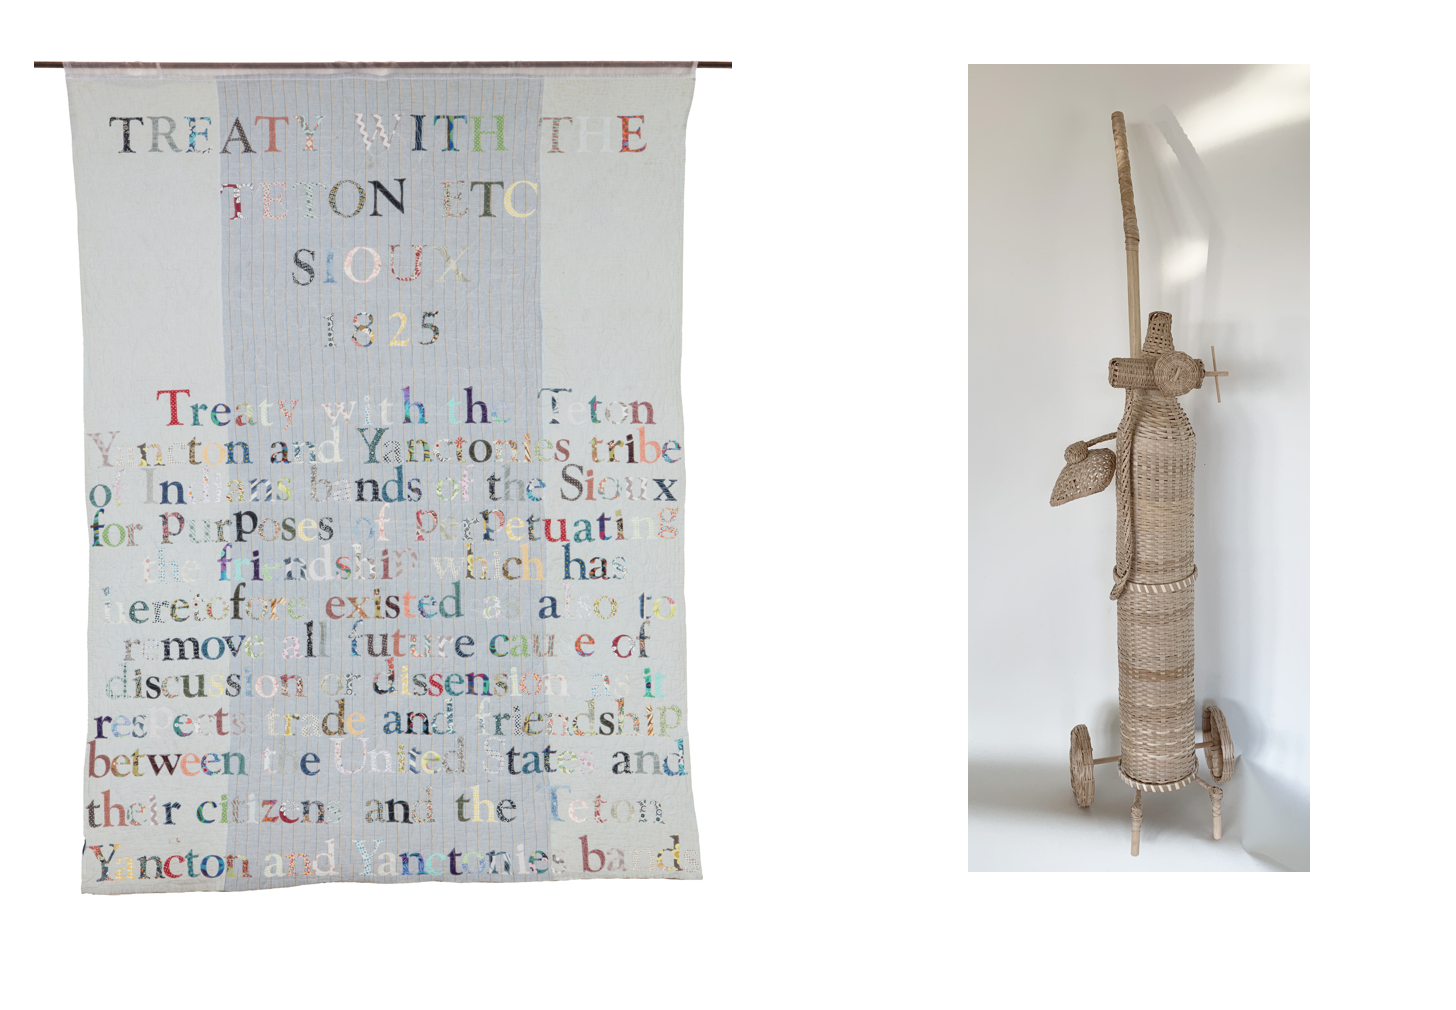 This is an image of two works of art by Gina Adams and Merritt Johnson - one is a textile and the other a sculpture